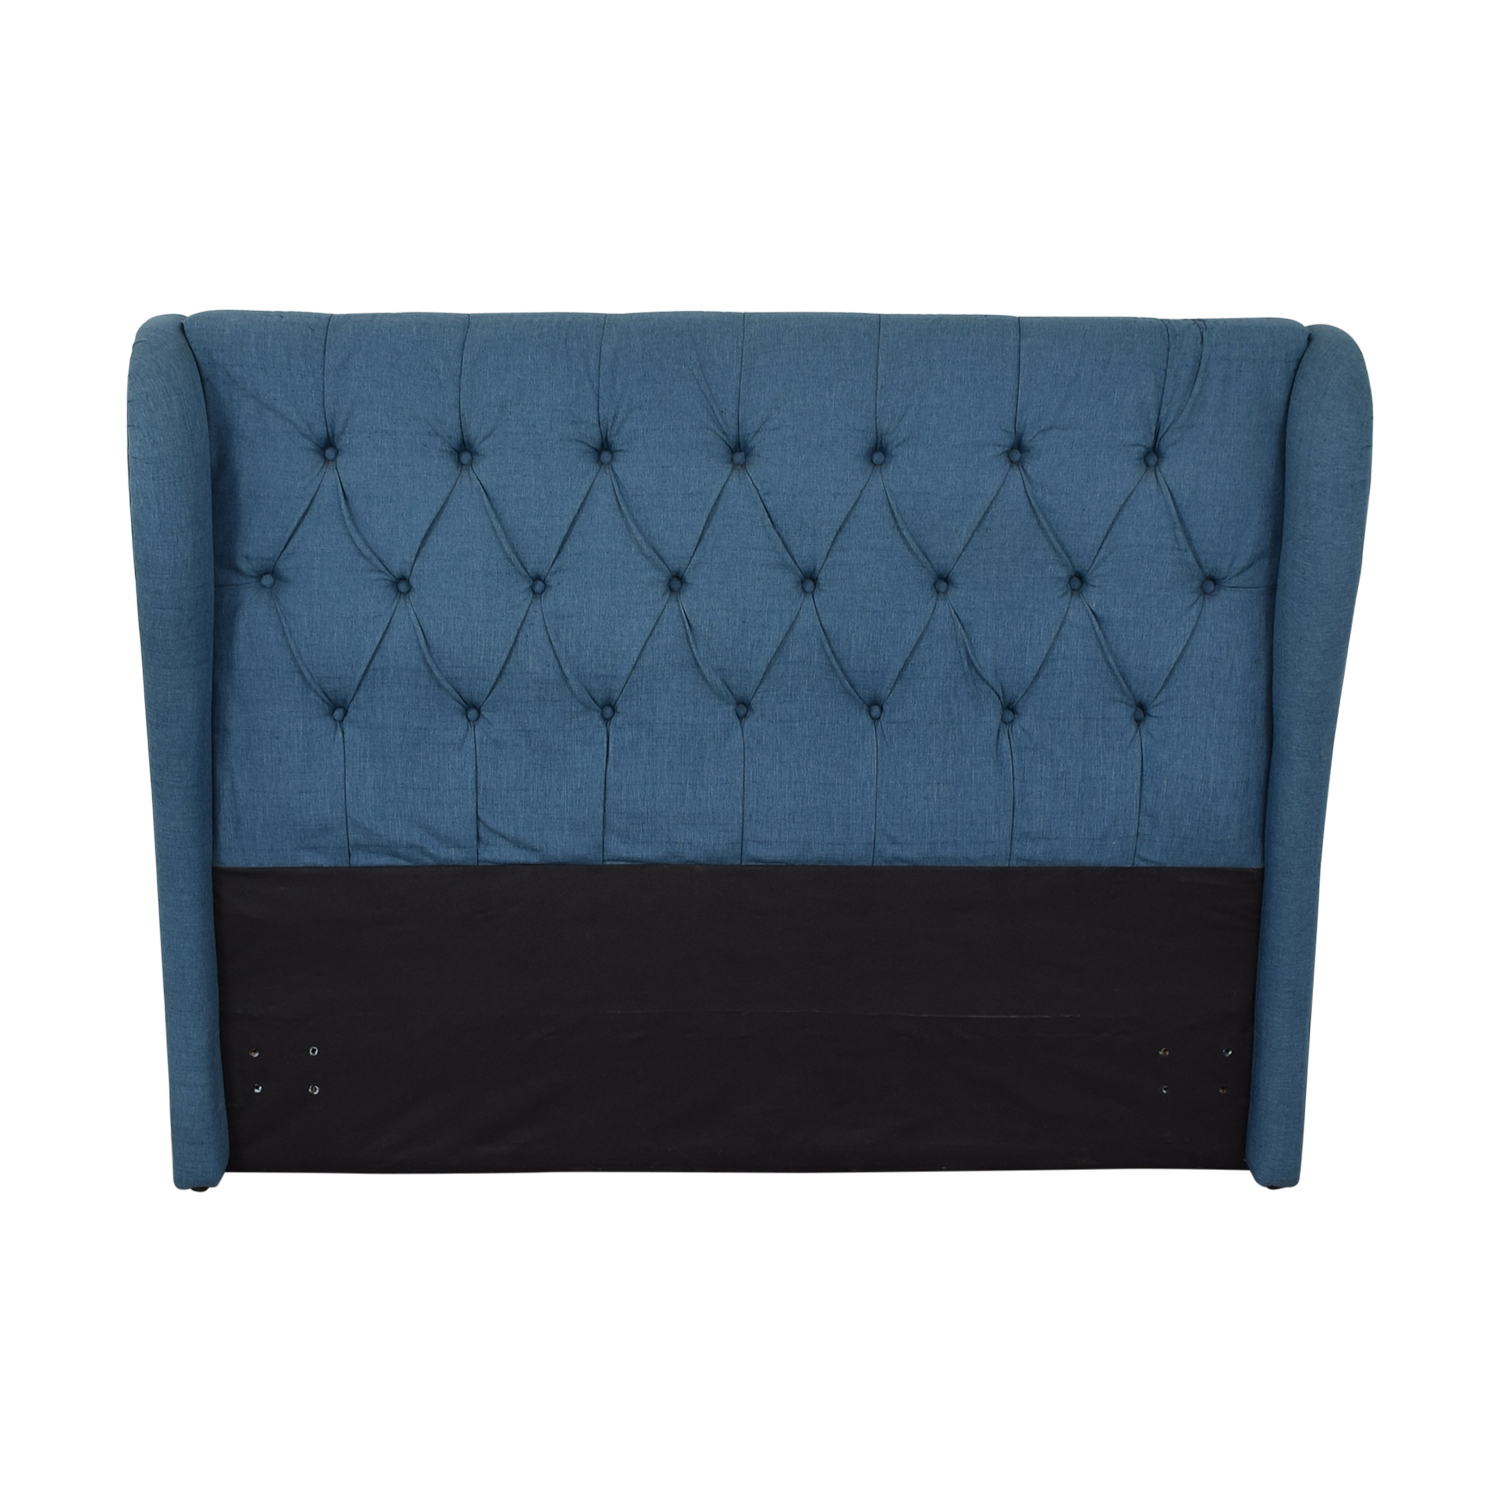 Blue Upolstered Tufted Queen Headboard / Headboards